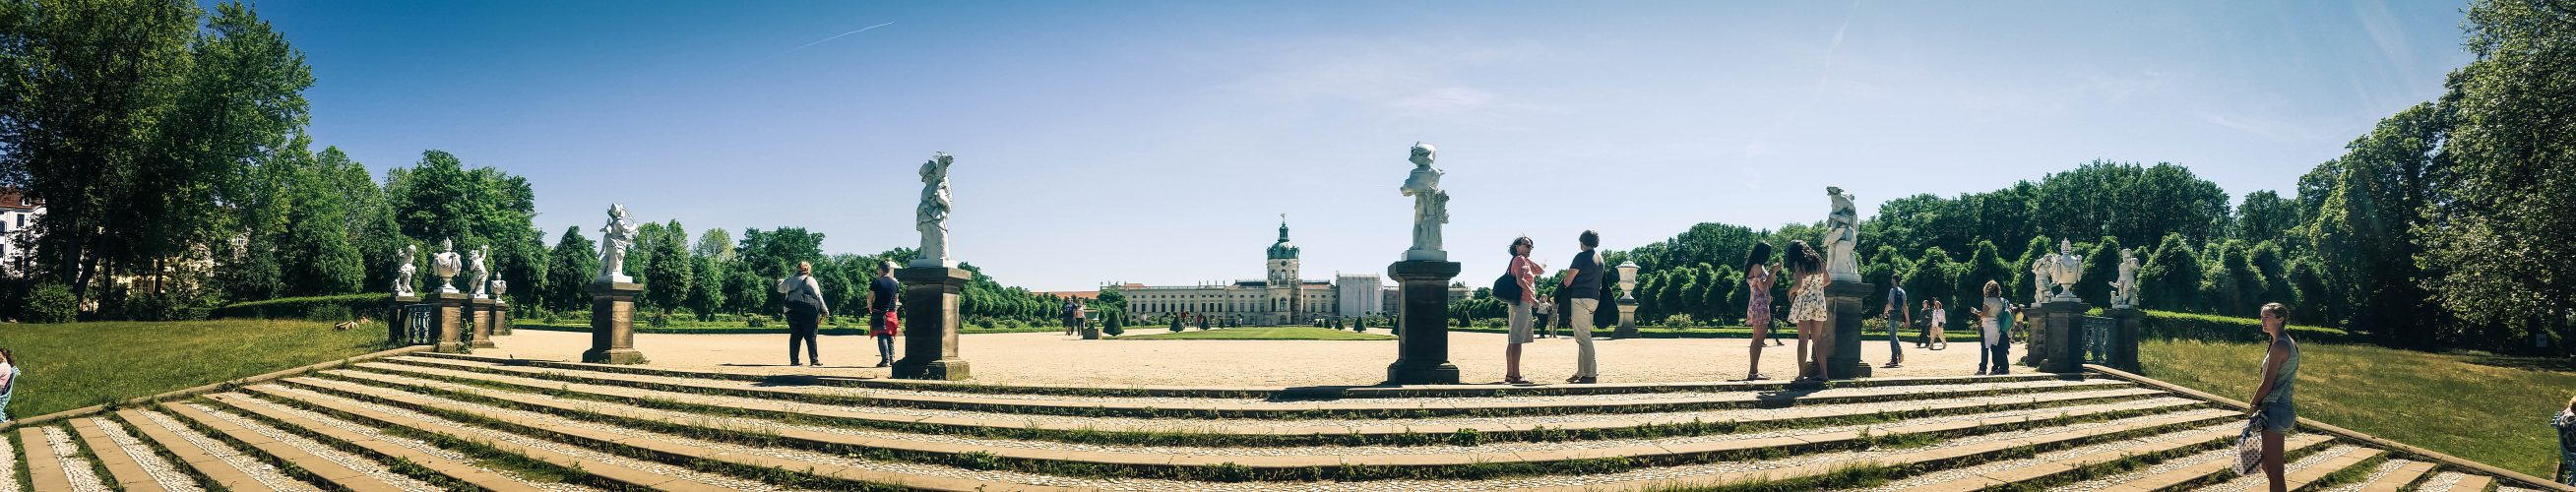 Royaler Lorbeer am Schloss Charlottenburg